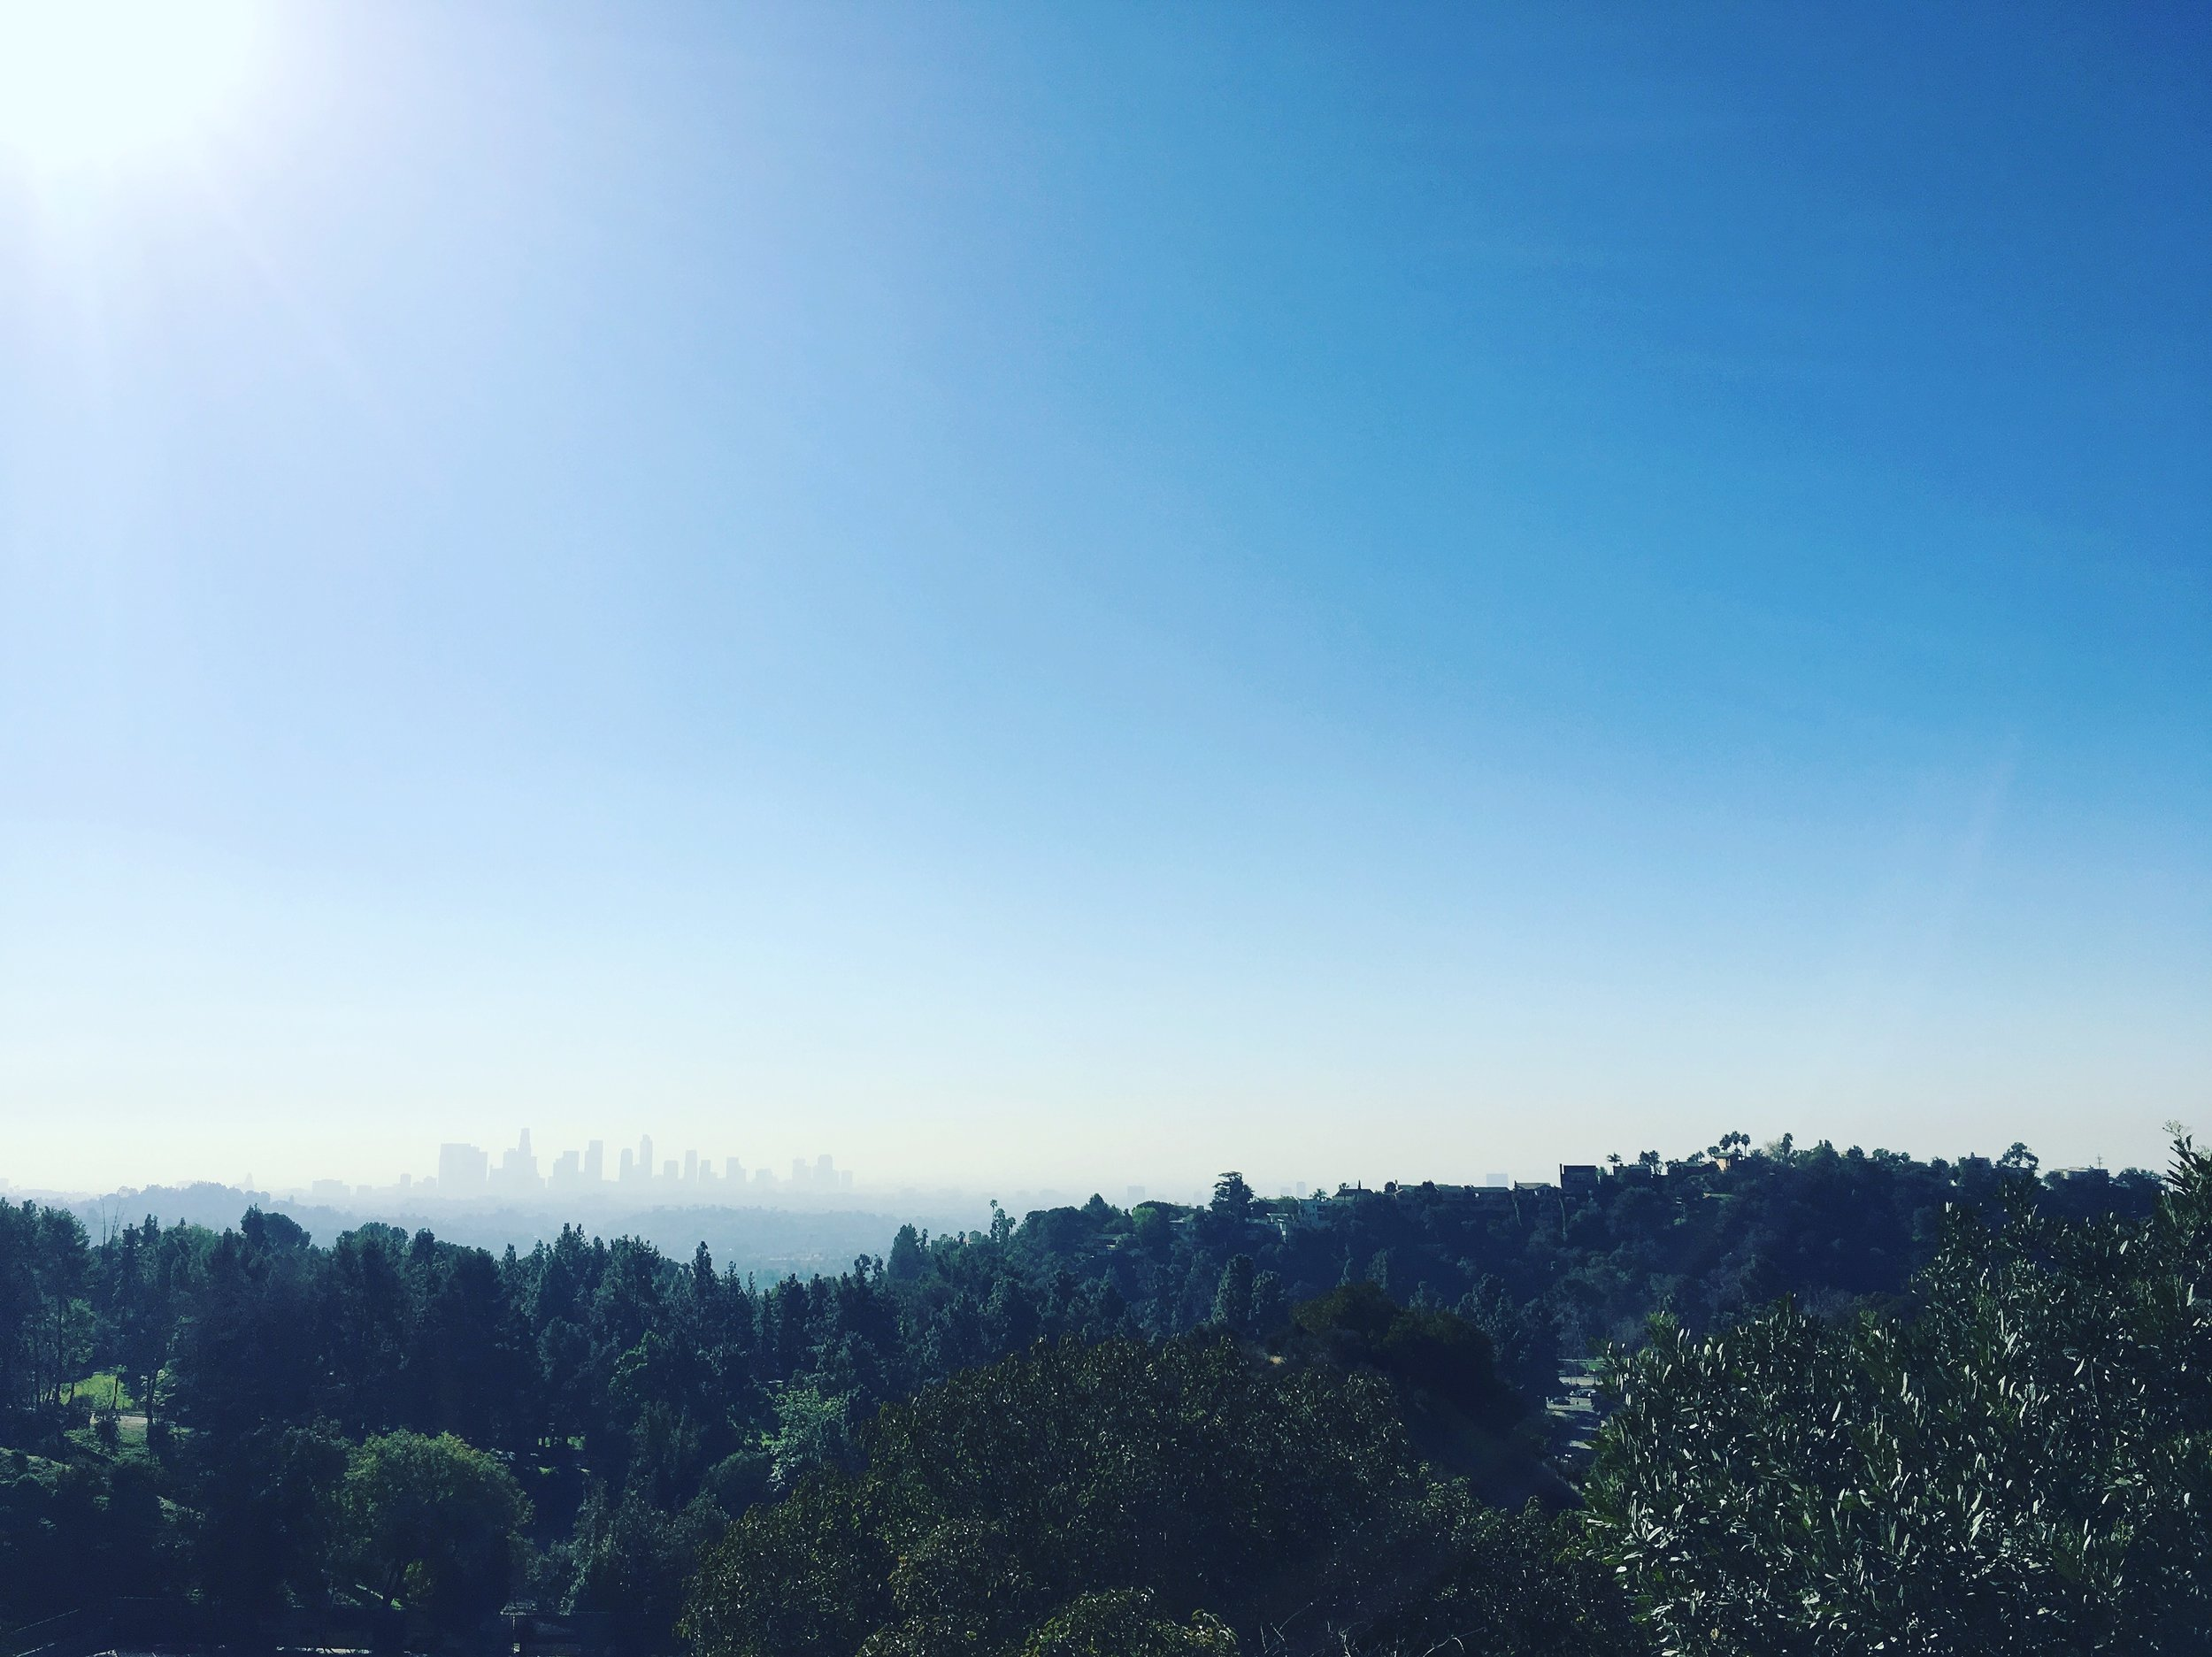 Facing downtown Los Angeles from Griffith Park.